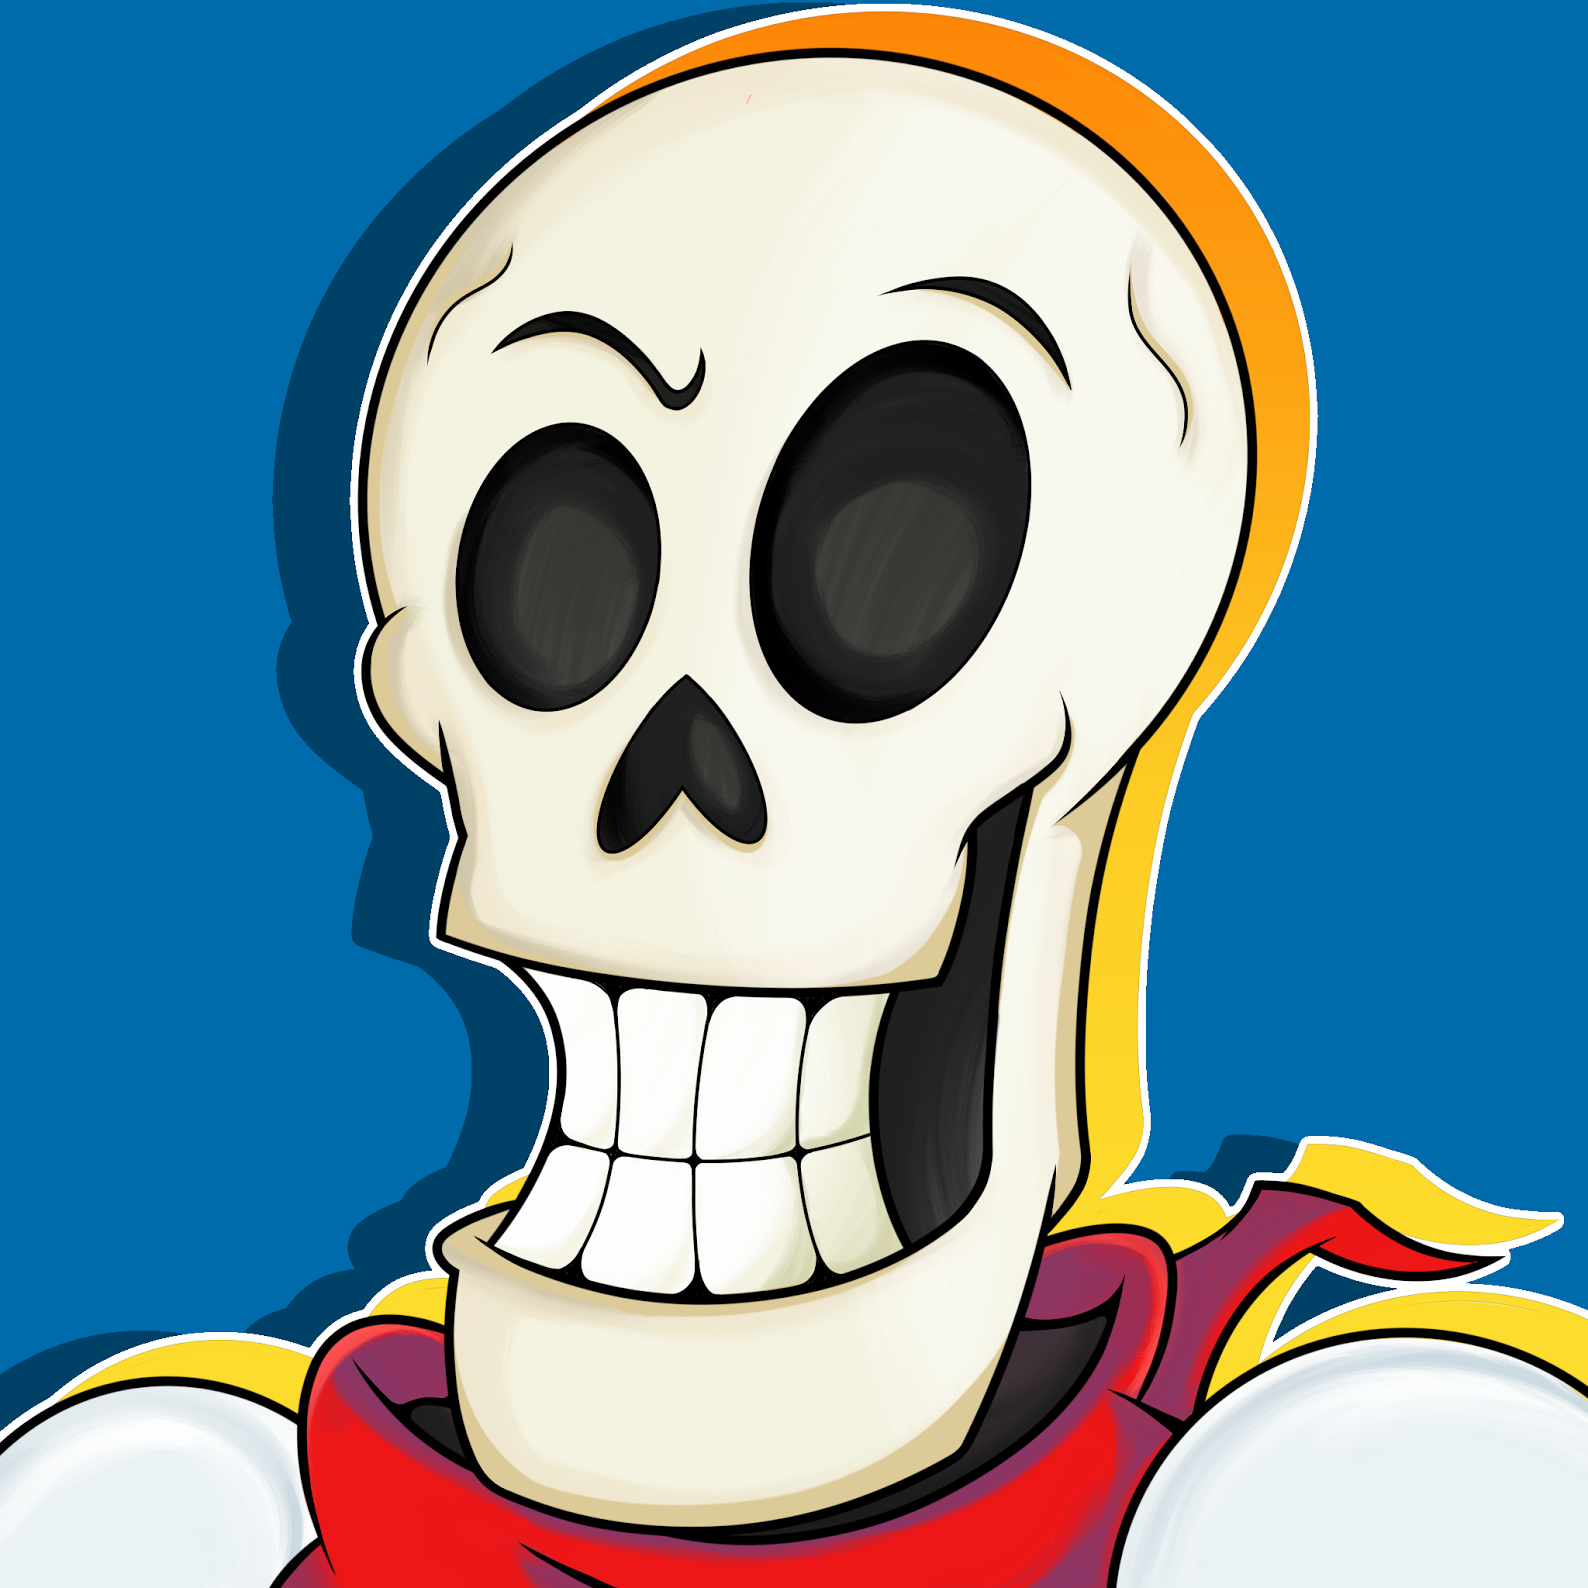 Papyrus [Drawing] - 5/18/16